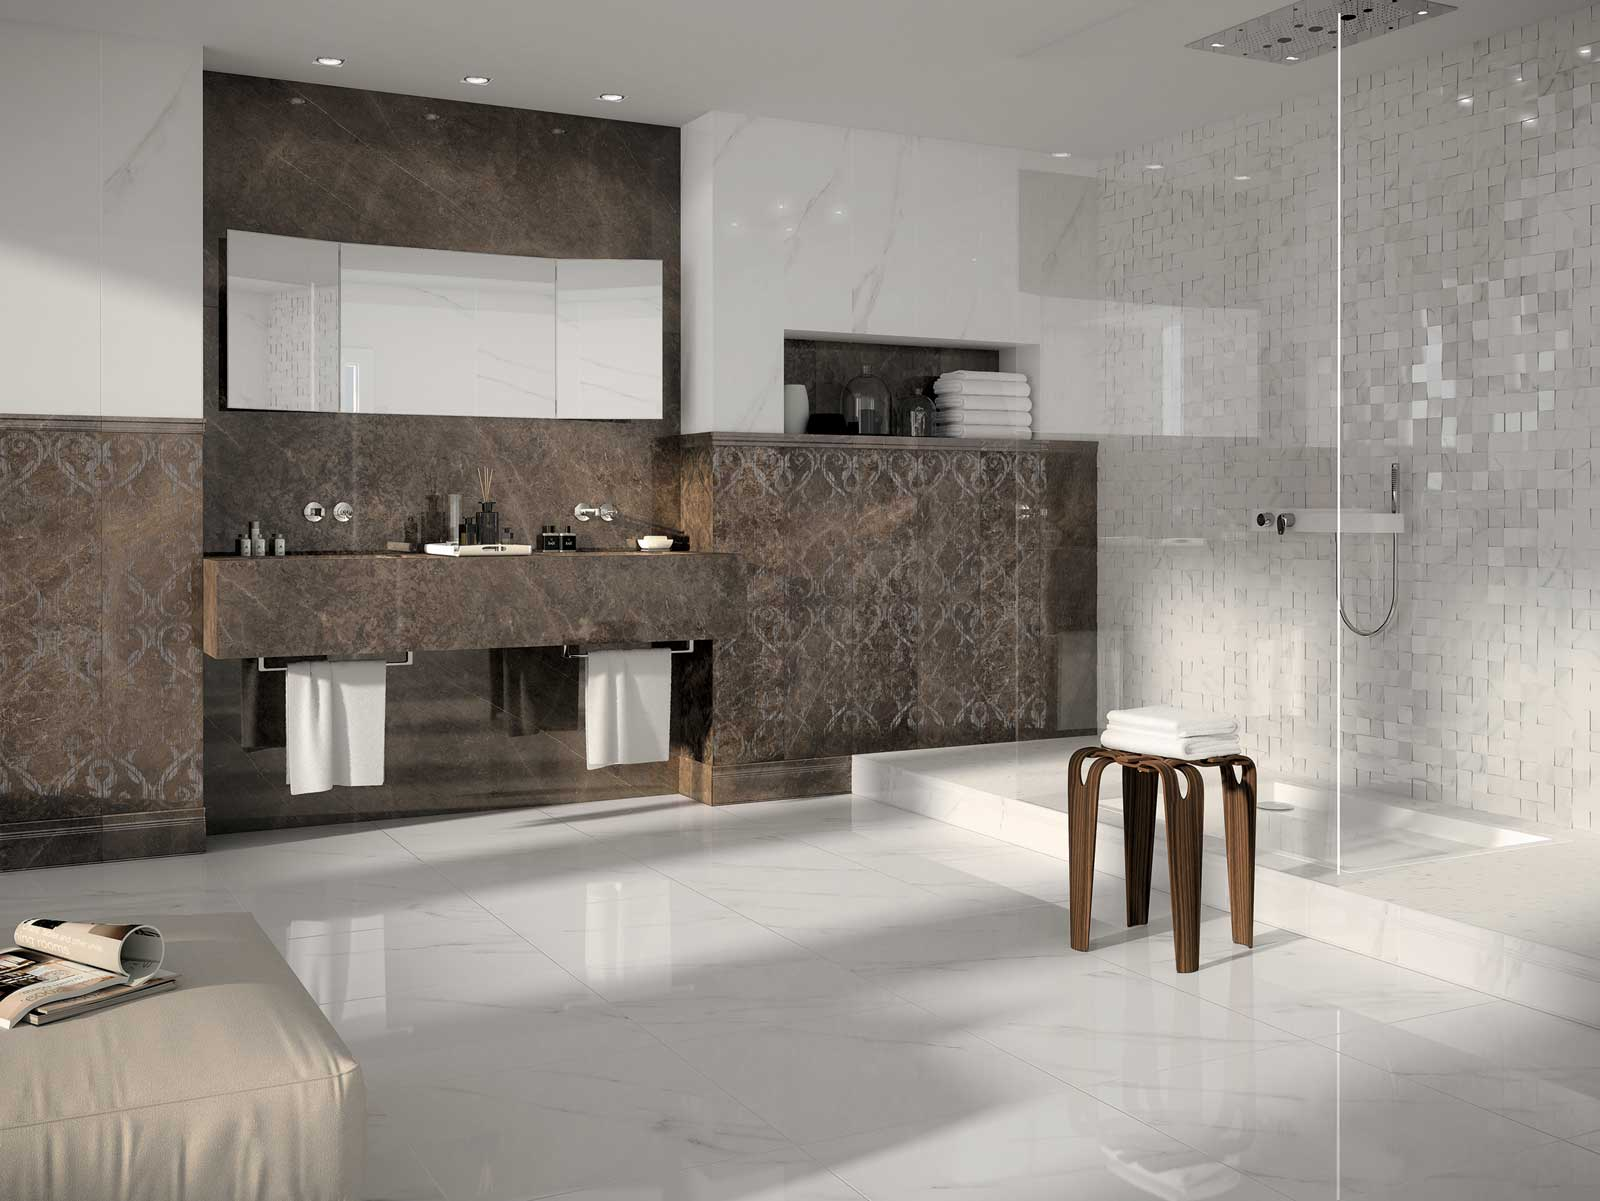 Mirage_Jewels_Bagno_JW01_JW06bis.jpg